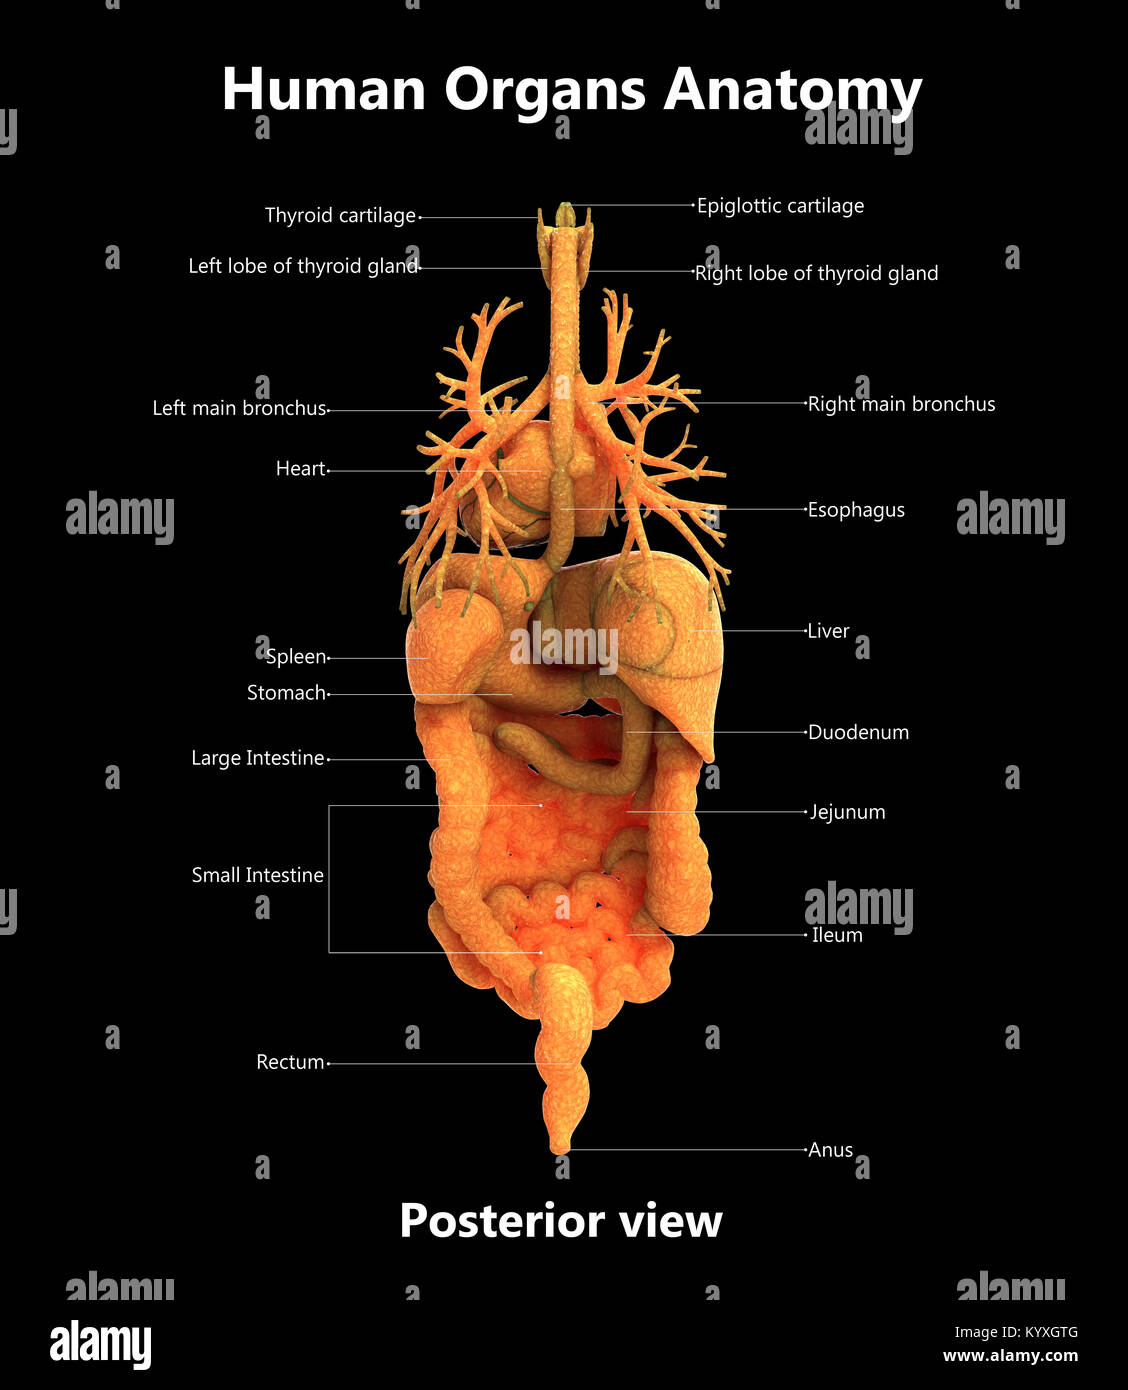 Human Body Organs Label Design Posterior view Anatomy Stock Photo ...